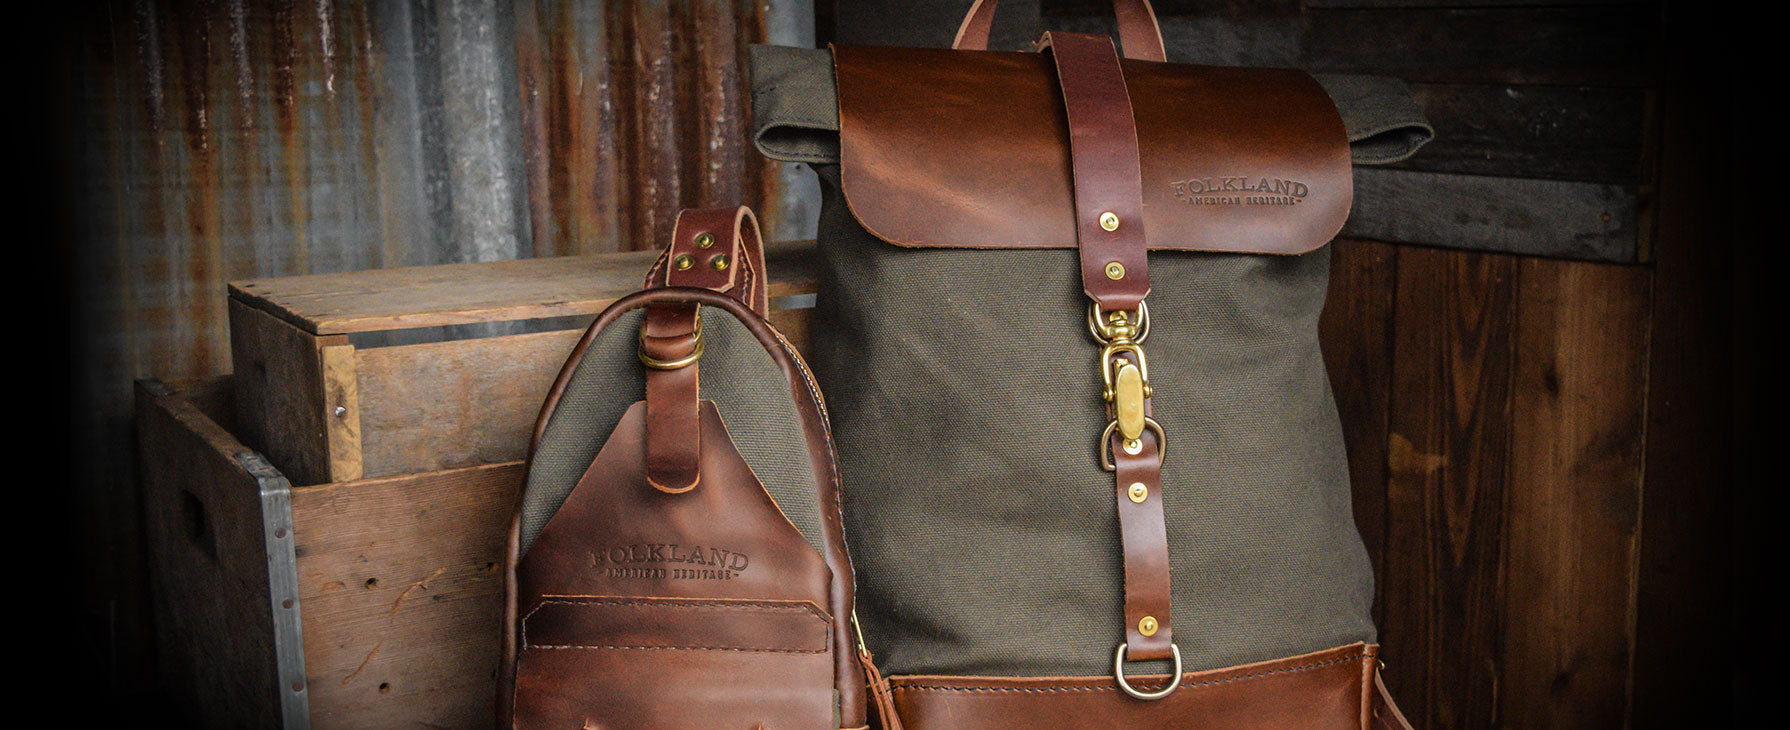 Folkland Durable Packs American Made